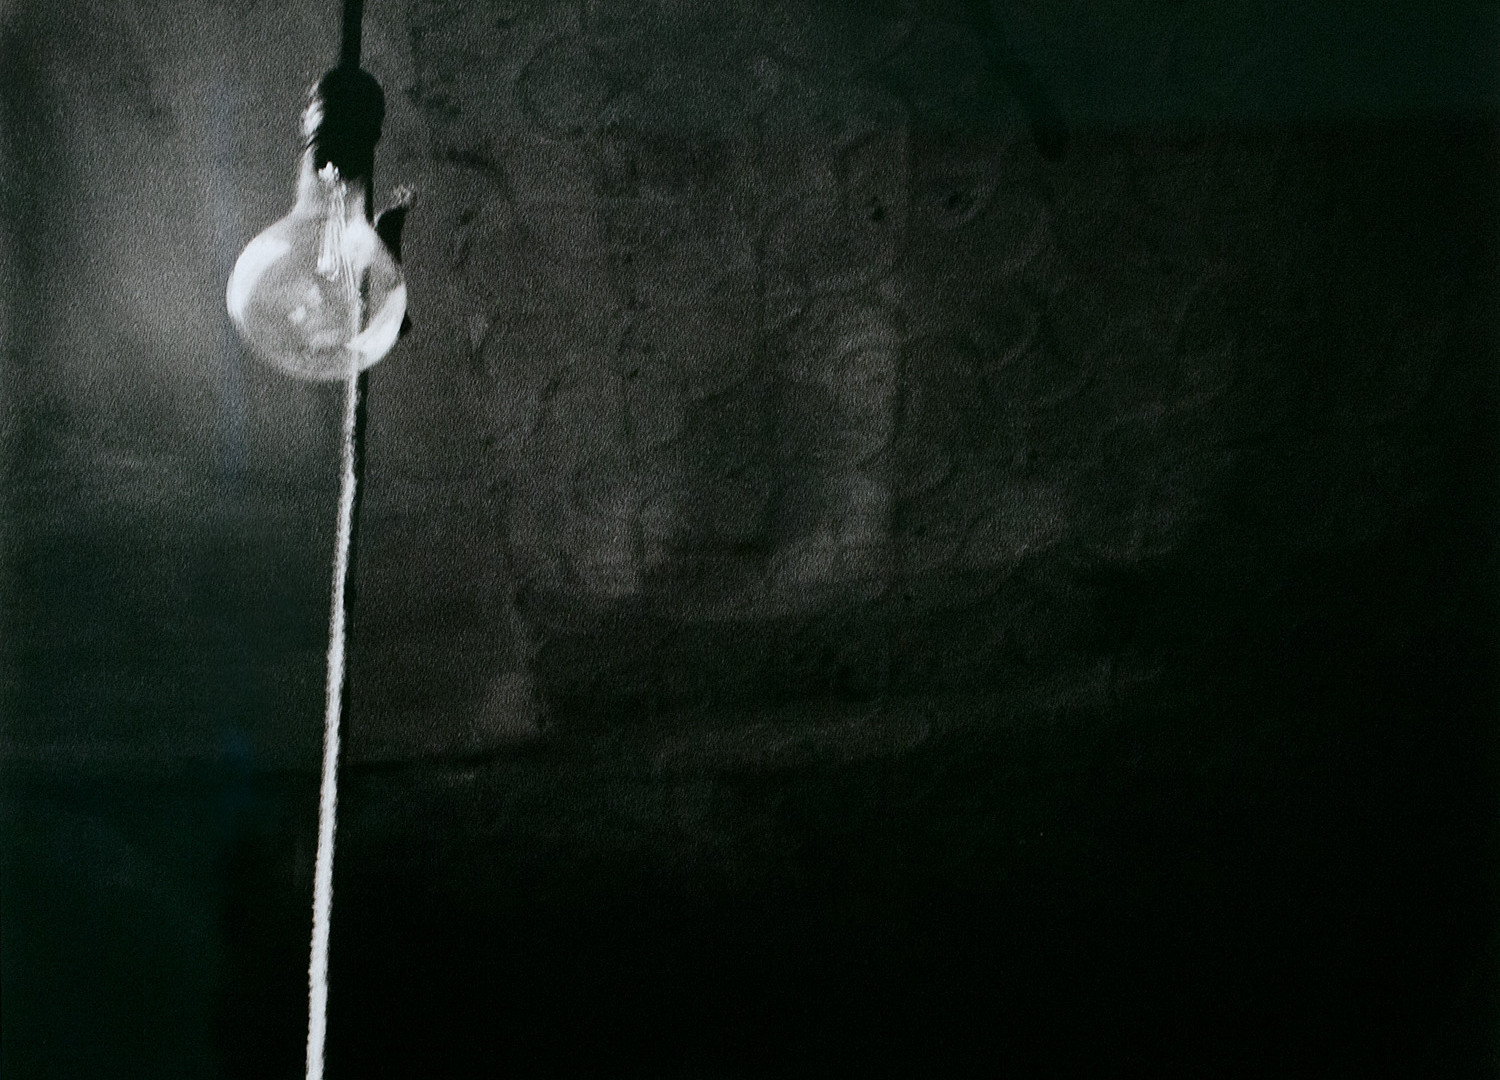 Robert Rauschenberg, Ceiling + Light Bulb, 1950